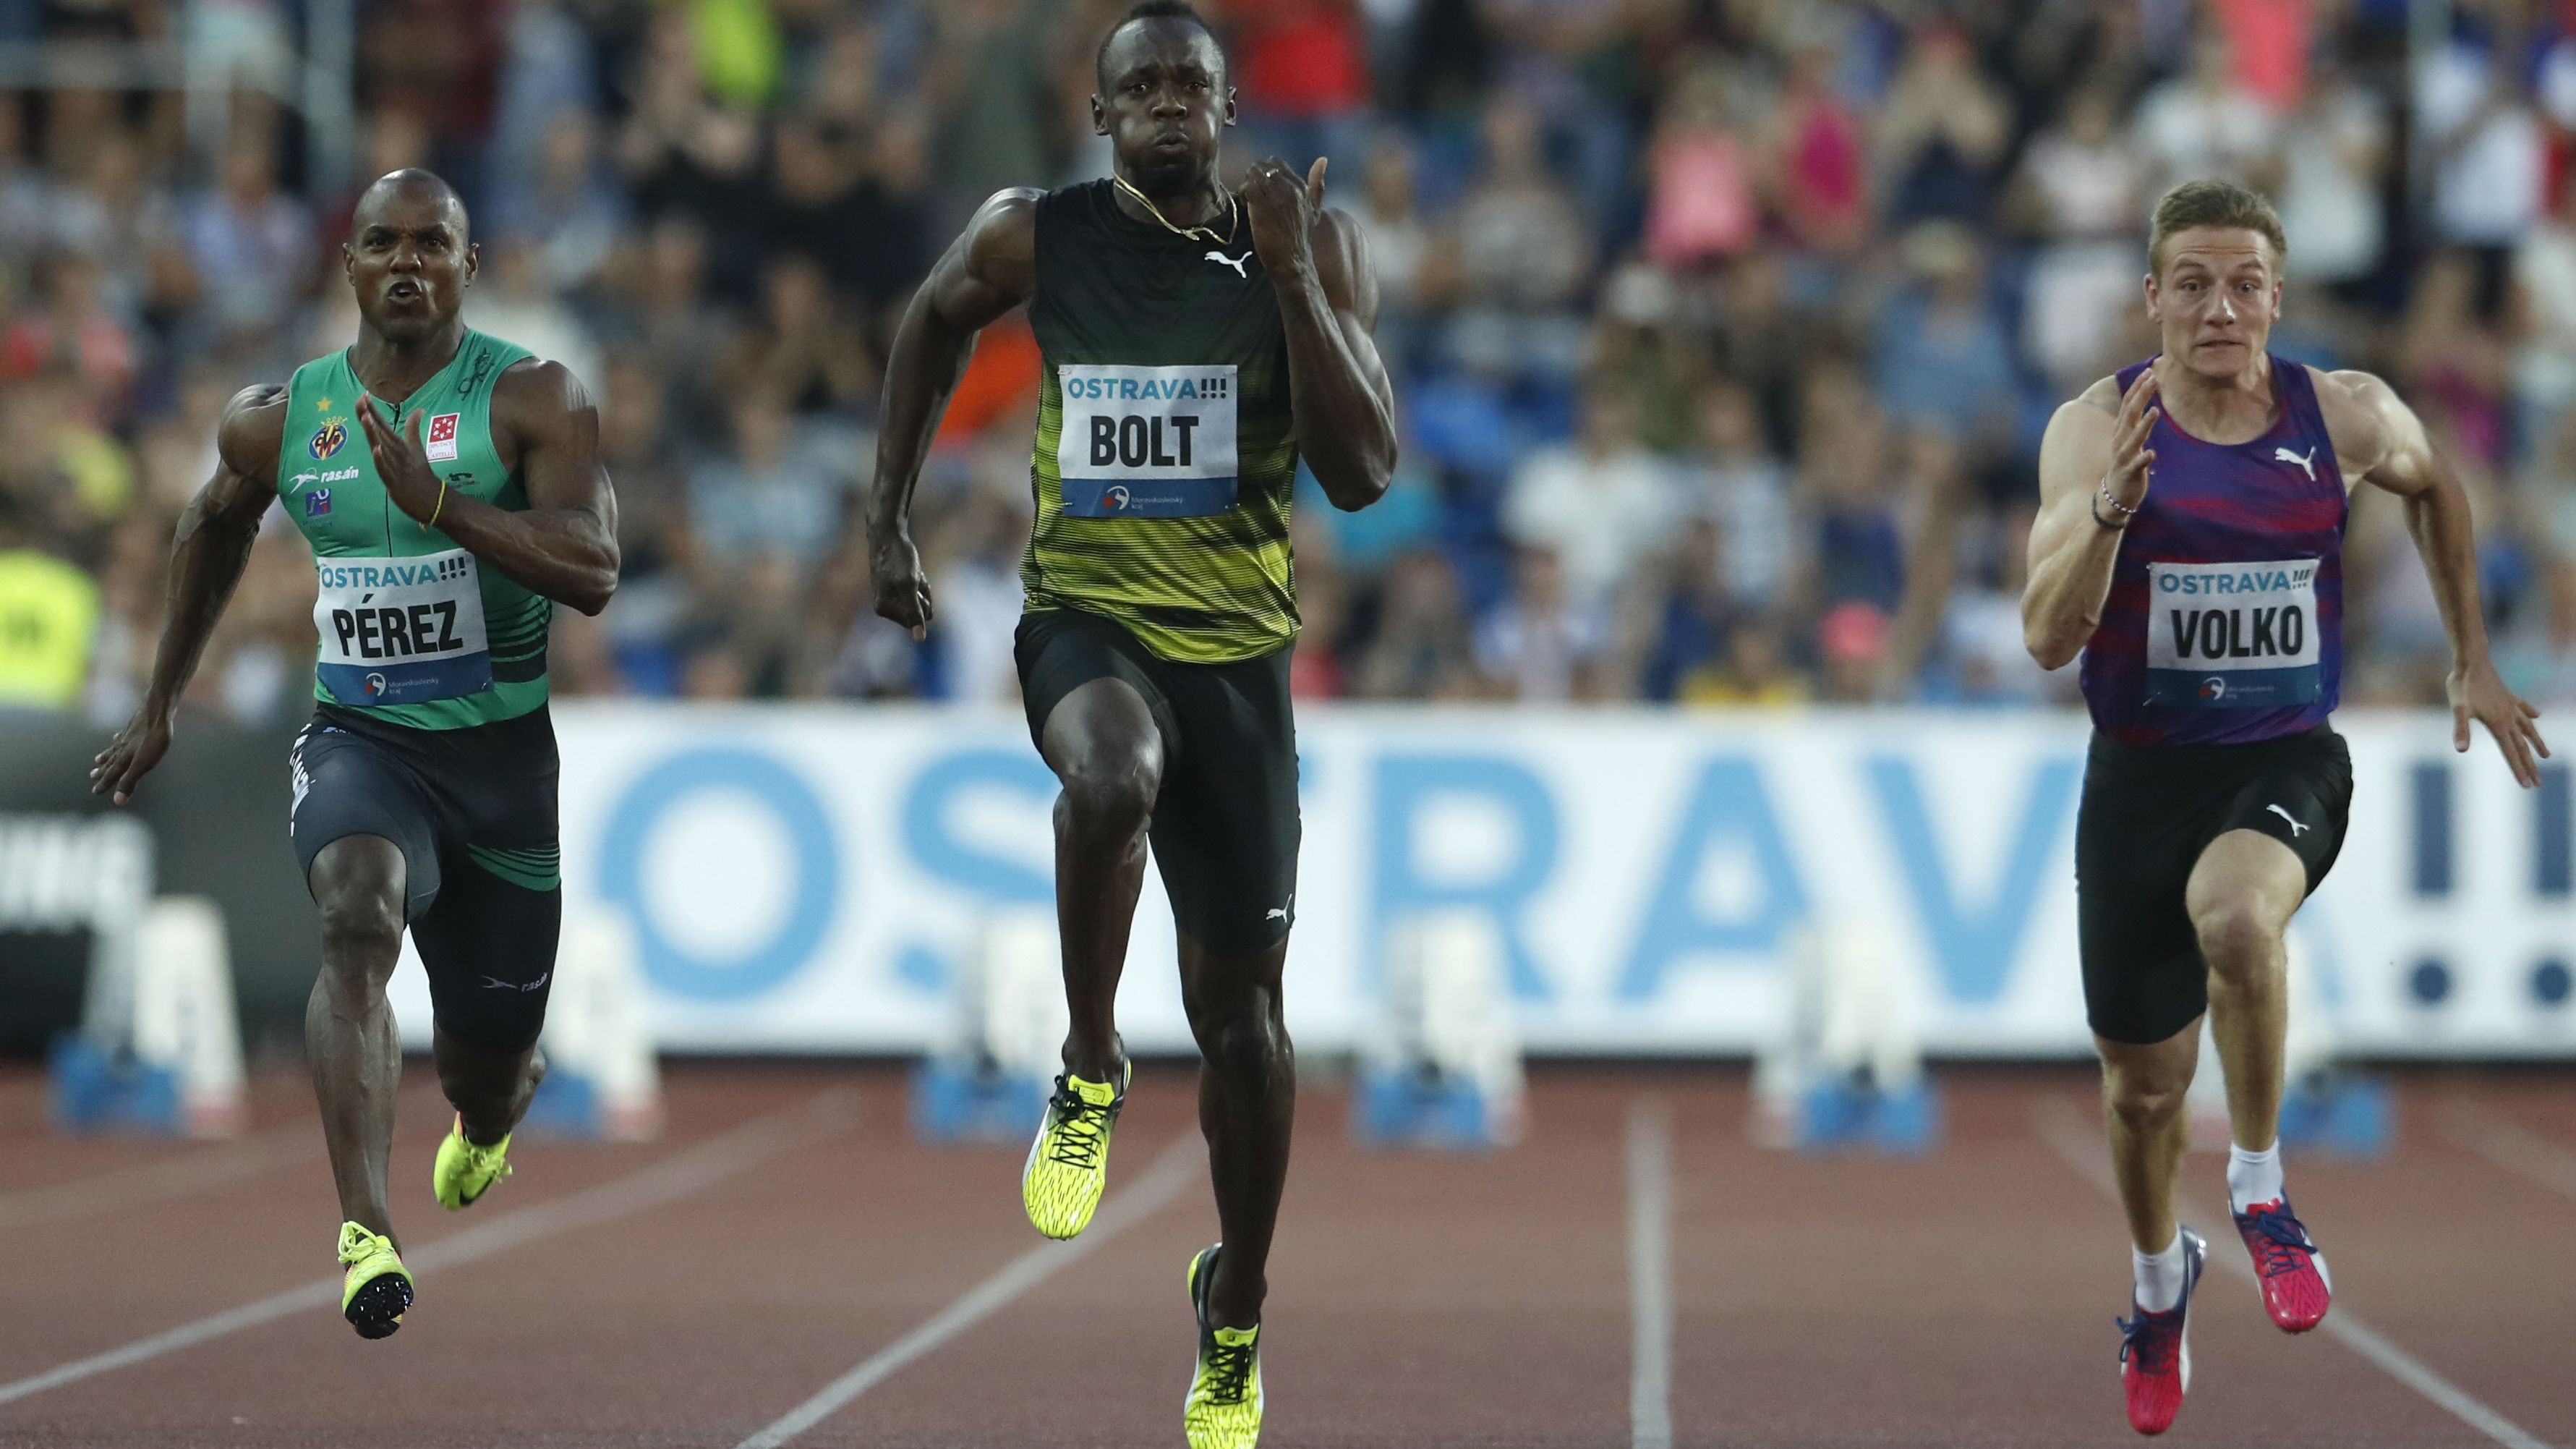 Usain Bolt from Jamaica, center, competes with Yunier Perez from Cuba, left and Jan Volko from Slovakia to win the 100 meters men's event at the Golden Spike athletic meeting in Ostrava, Czech Republic, Wednesday, June 28, 2017.